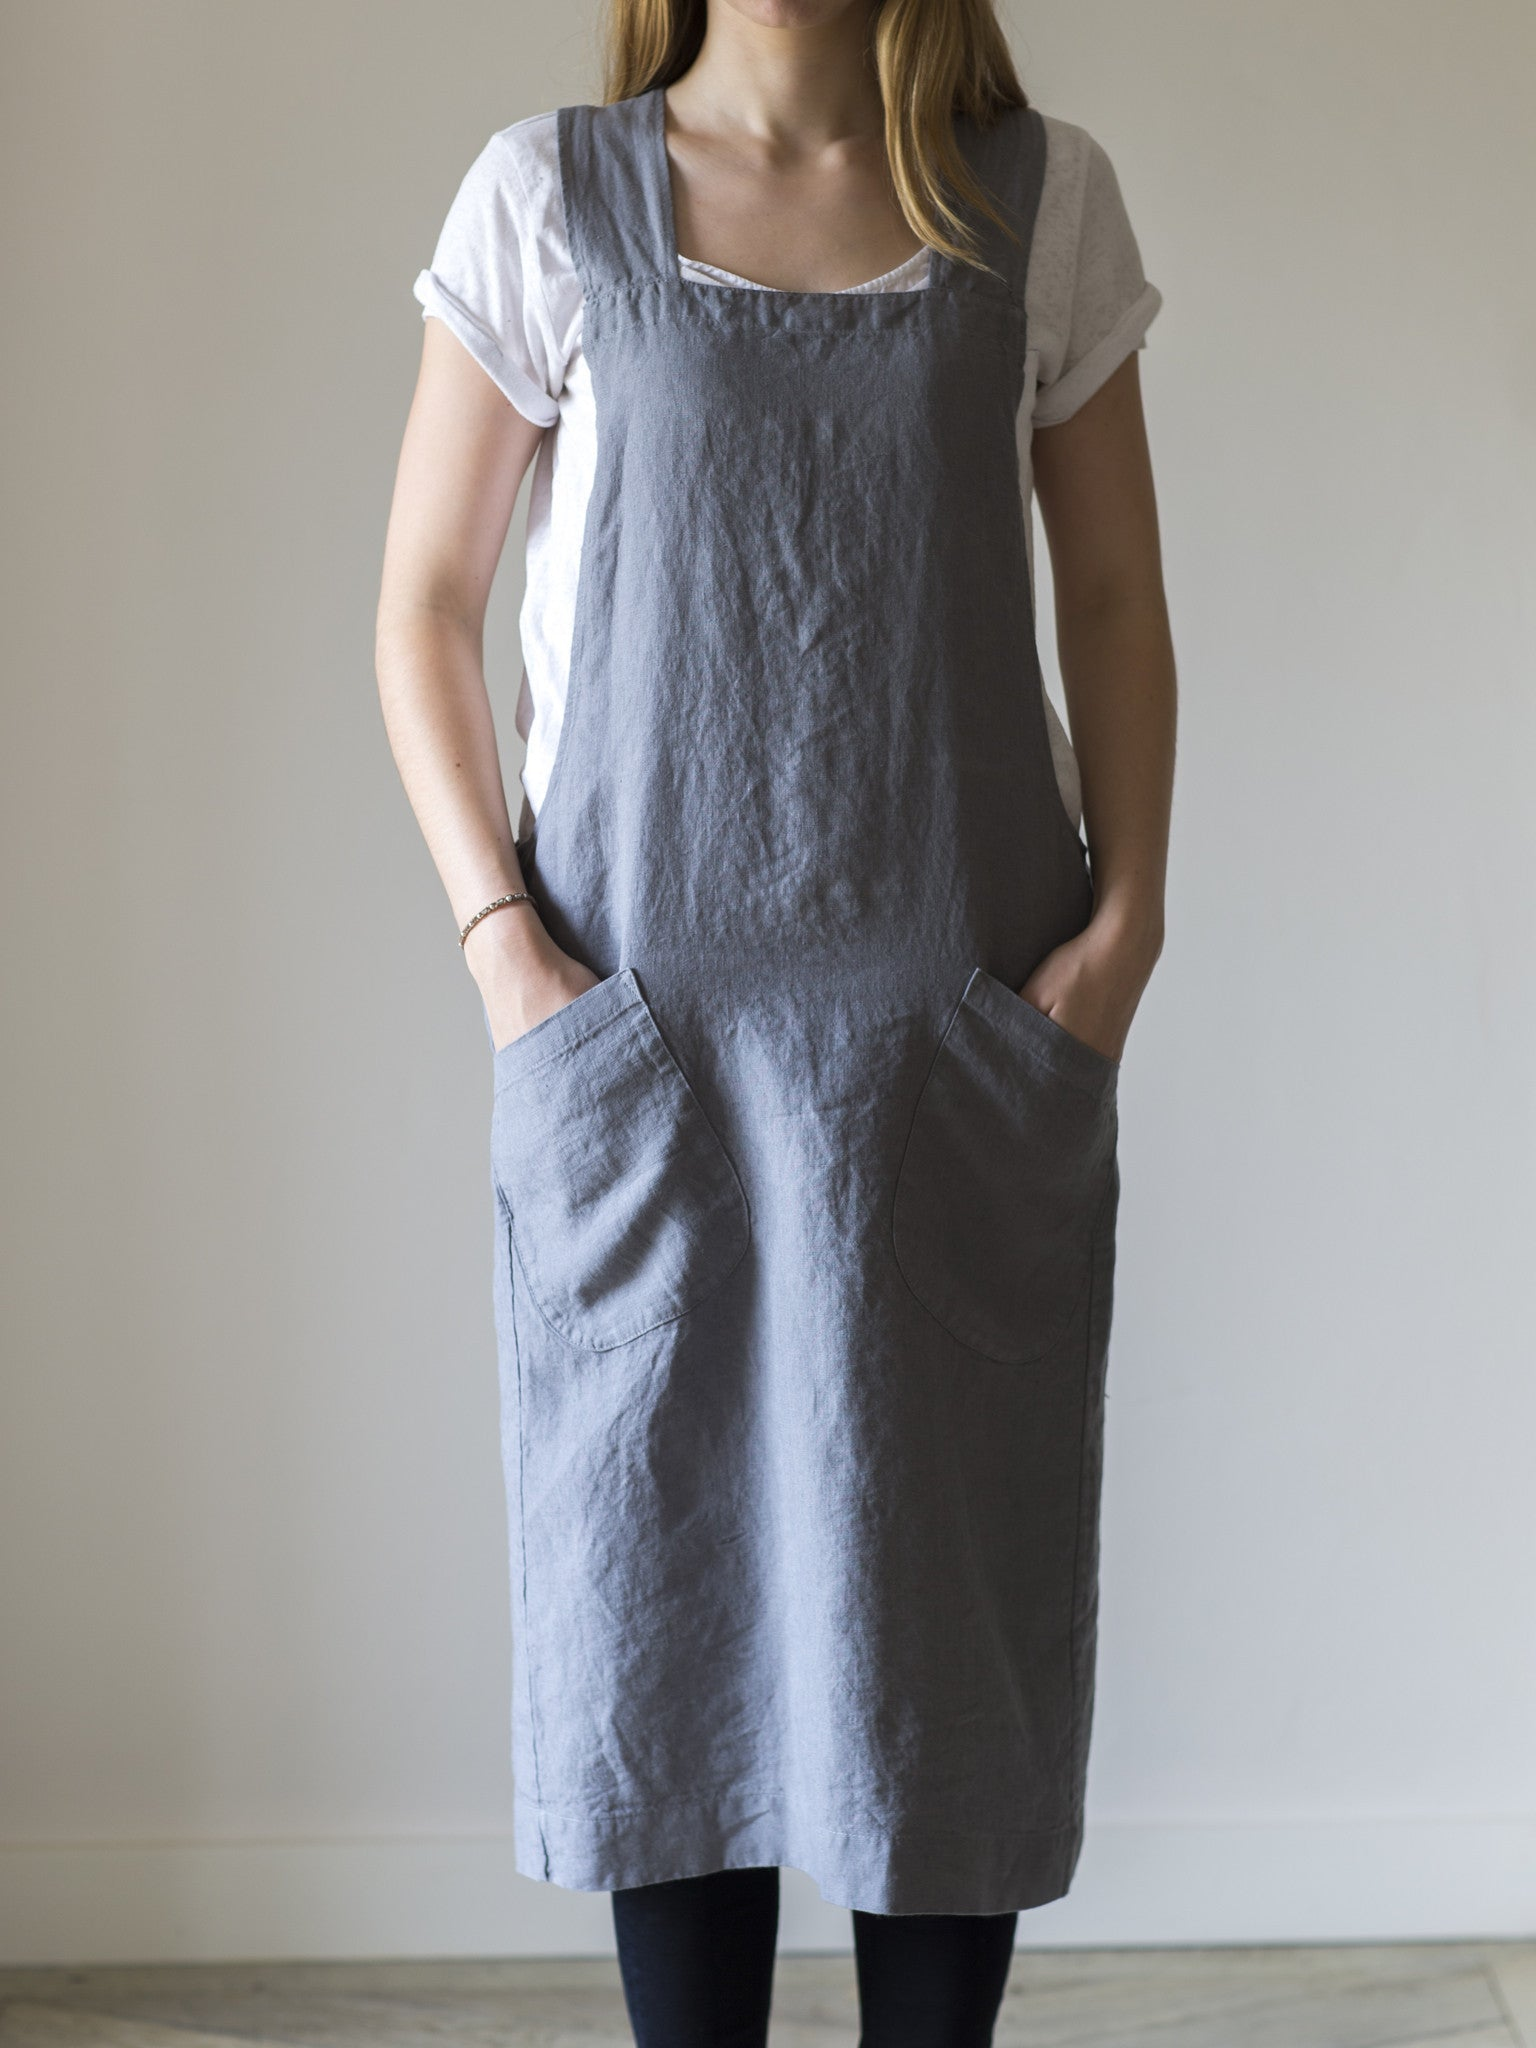 Apron Pinny - Charcoal